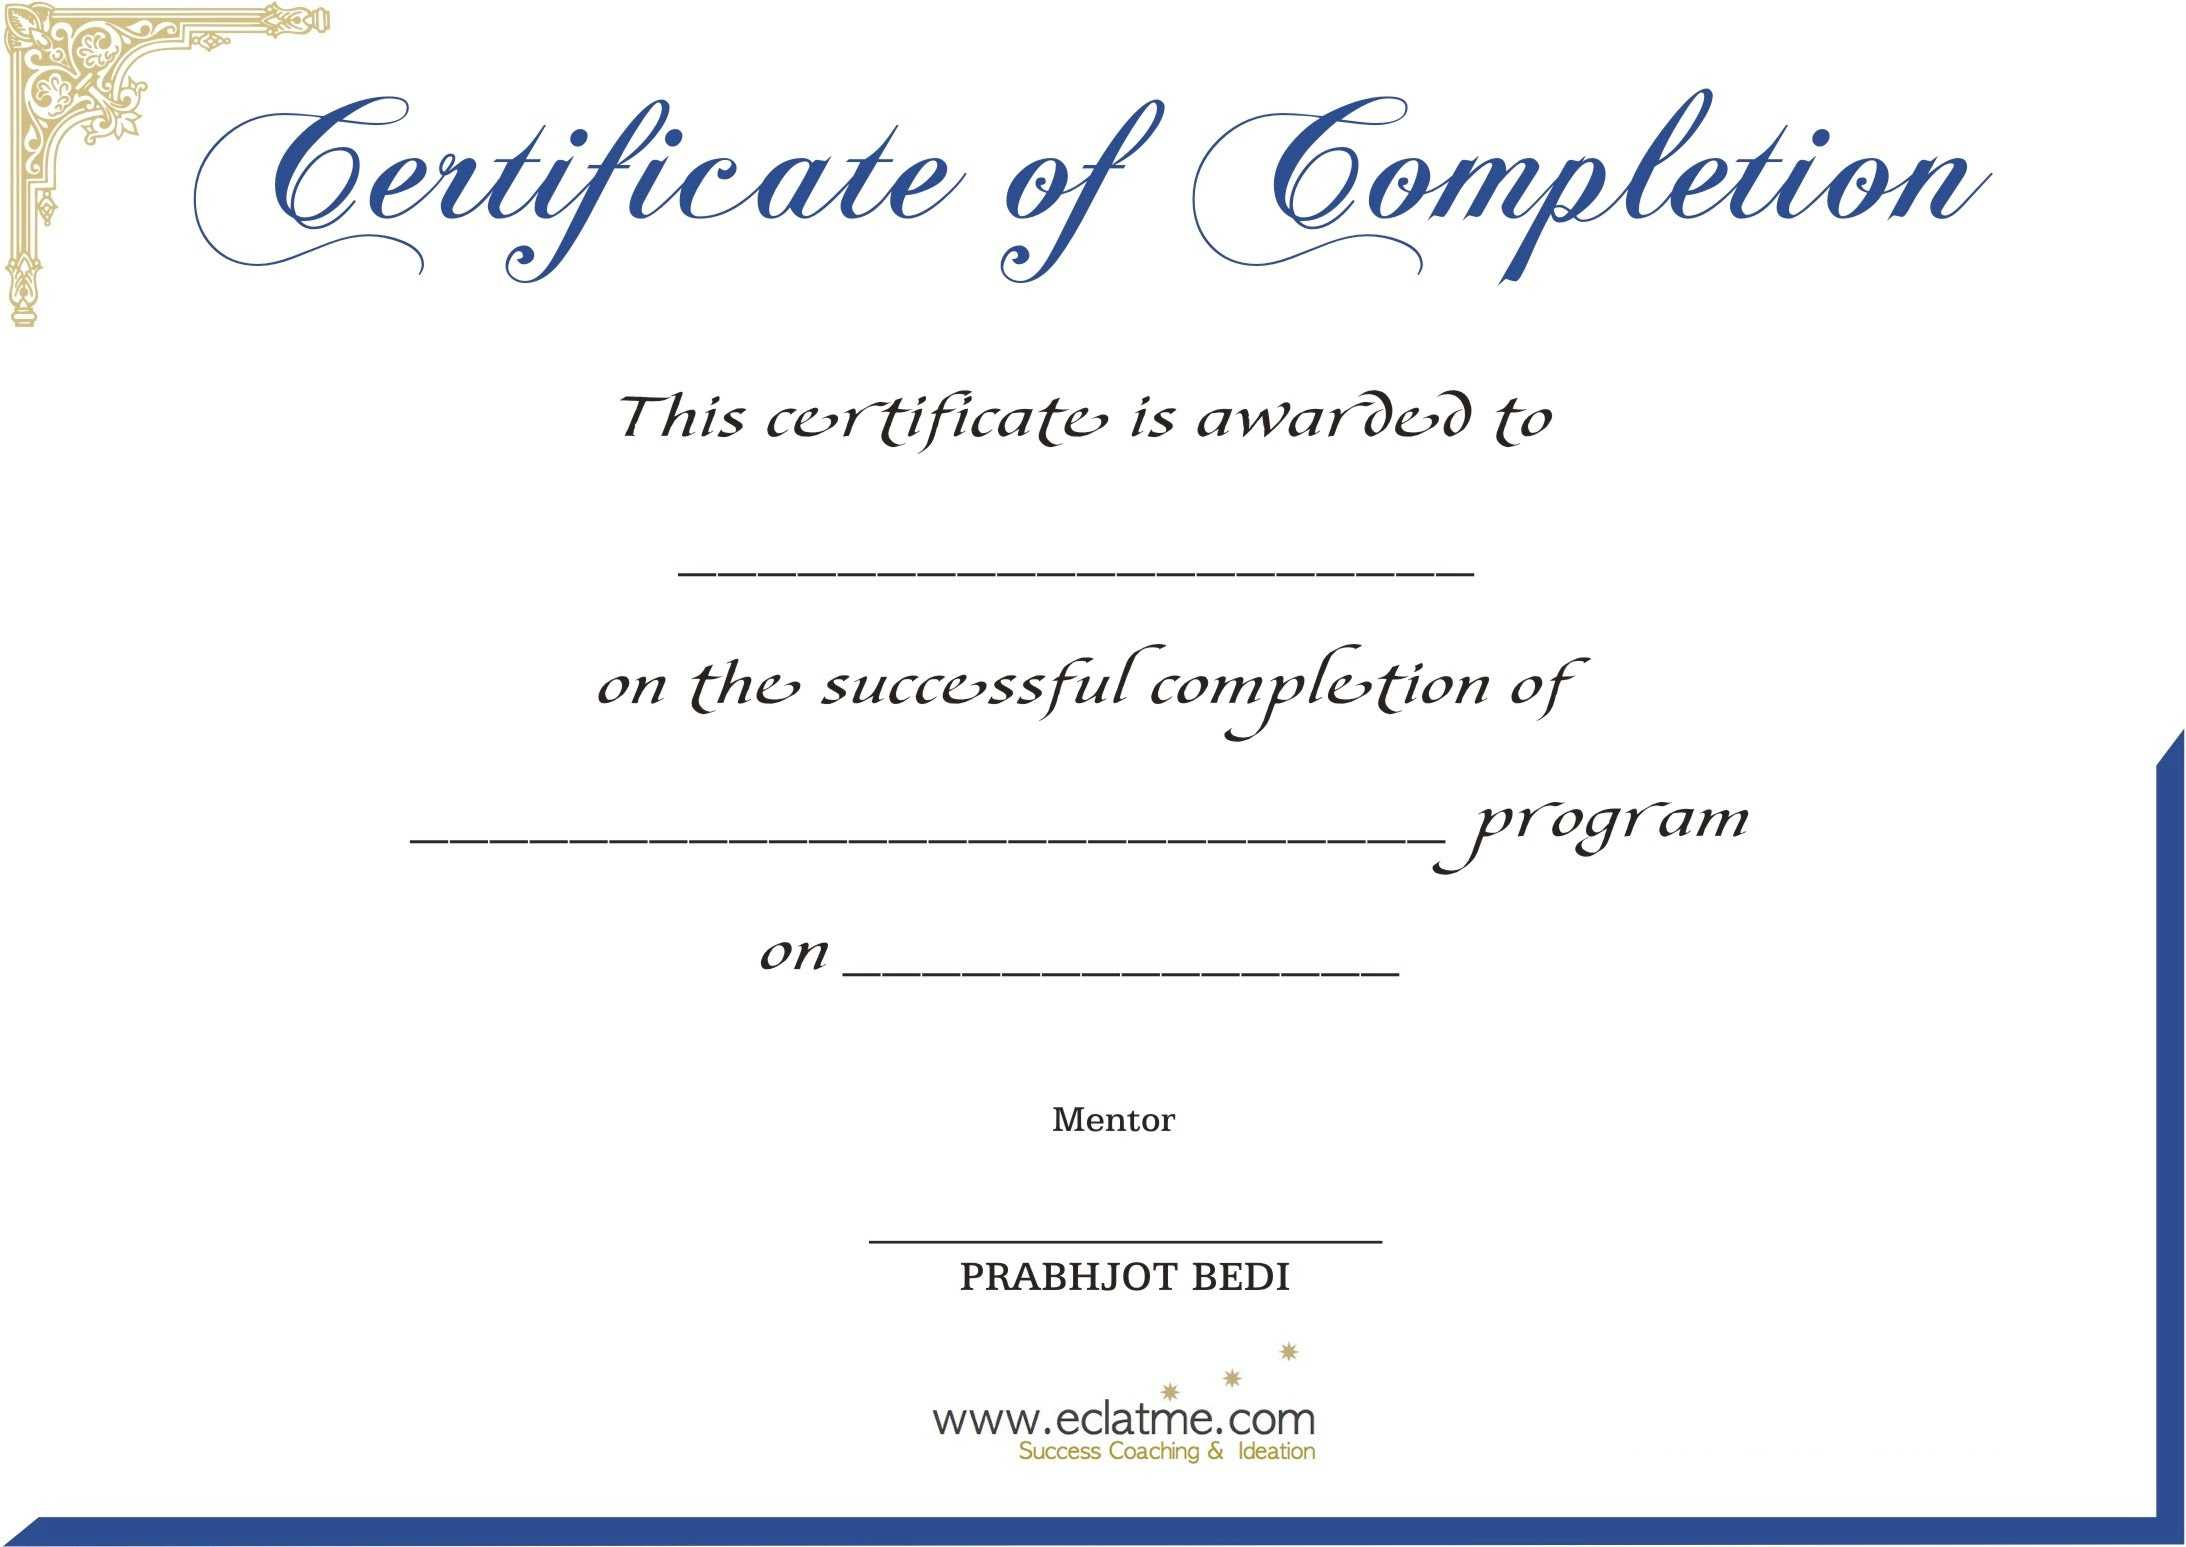 Premium Blank Certificate Of Completion Flyers : V M D Intended For Premarital Counseling Certificate Of Completion Template